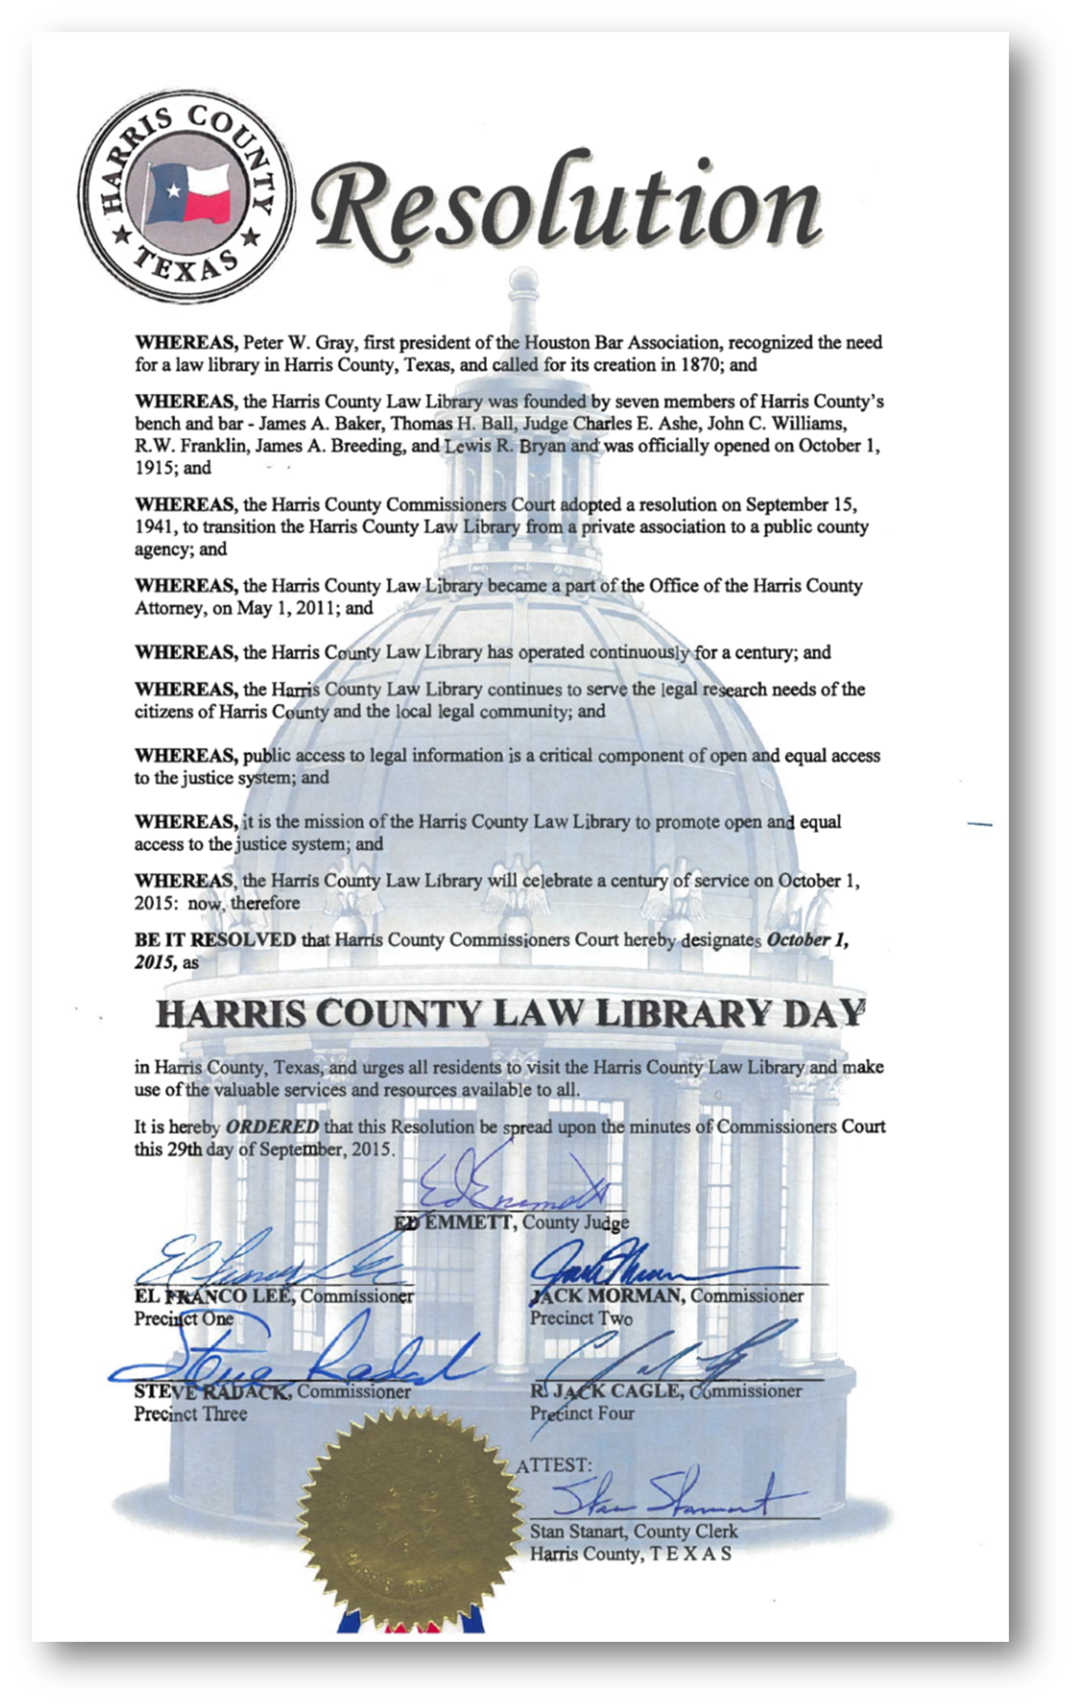 Resolution adopted by Harris County Commissioners Court on September 29, 2015, designating October 1, 2015 as Harris County Law Library Day.  {click to enlarge}